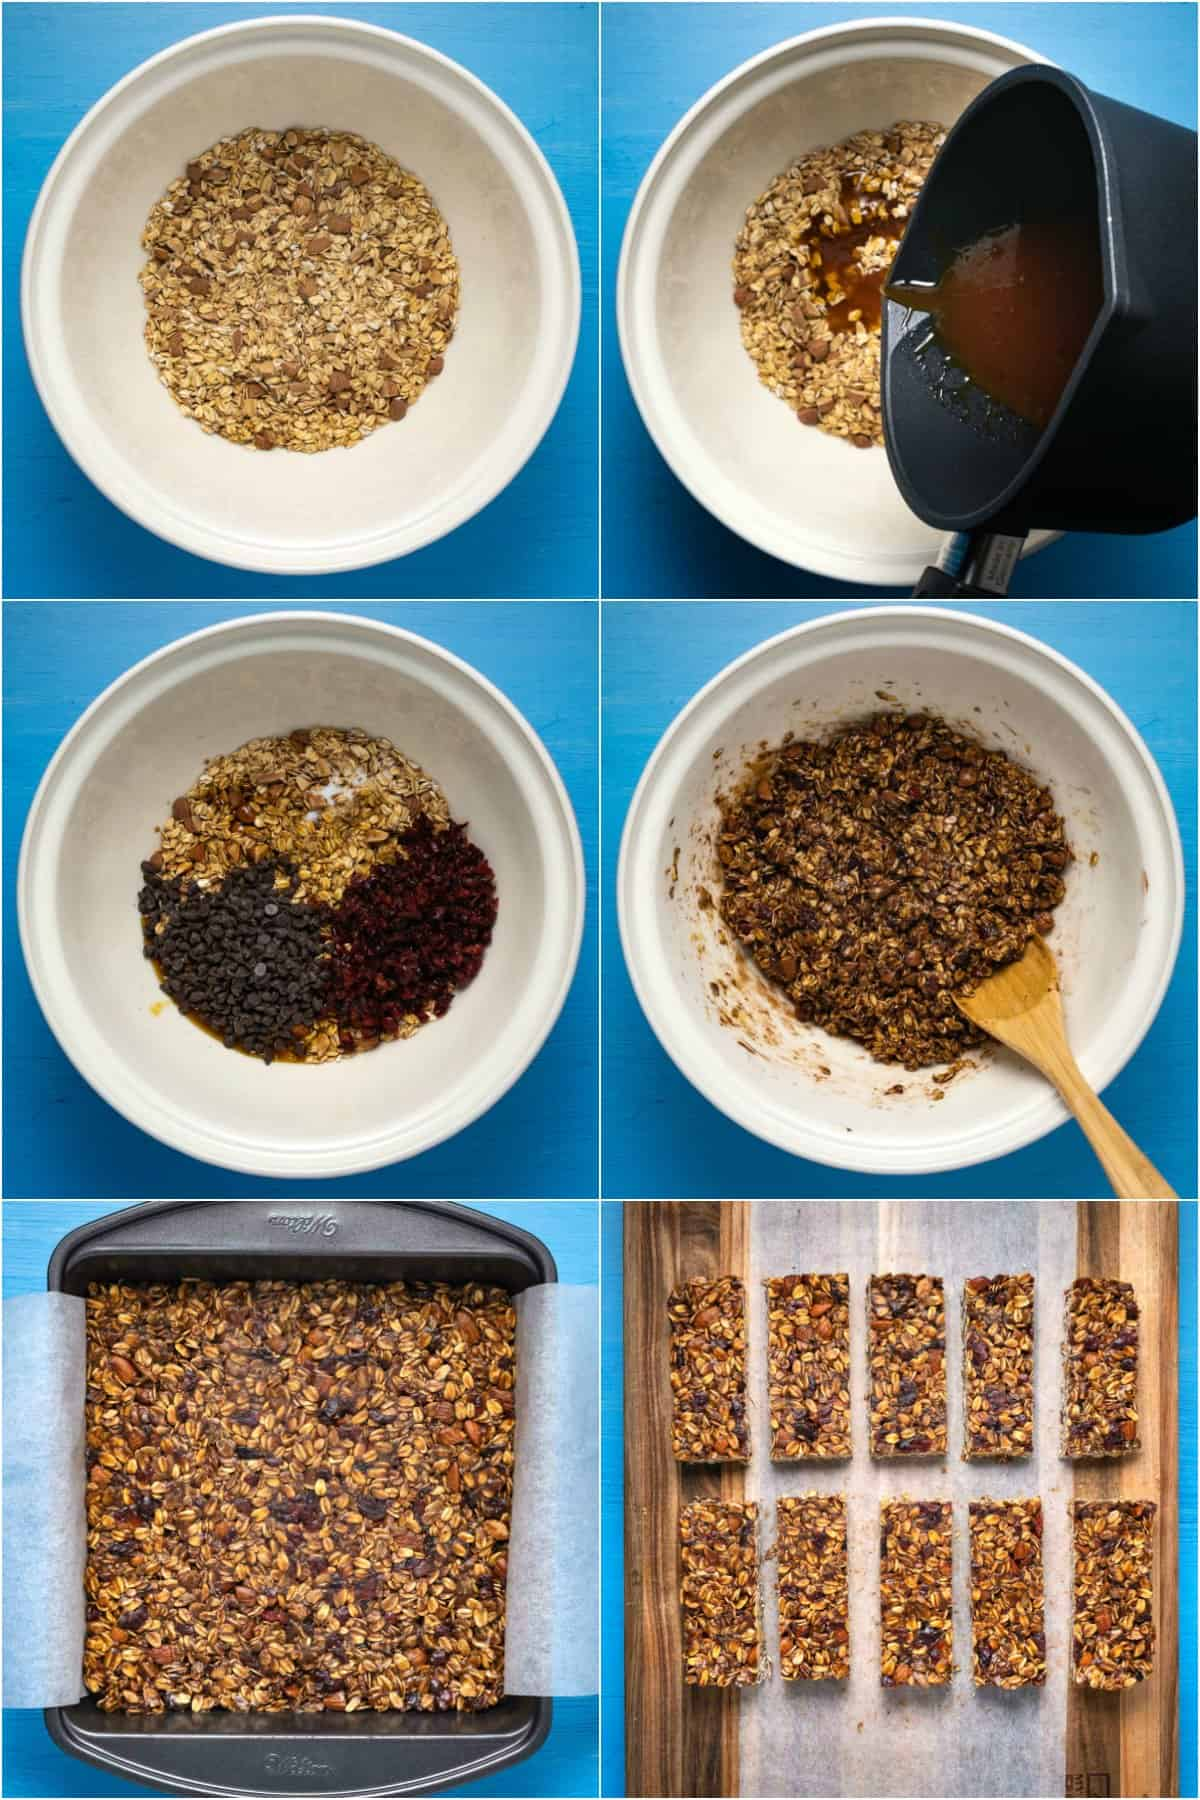 Step by step process photo collage of making vegan granola bars.